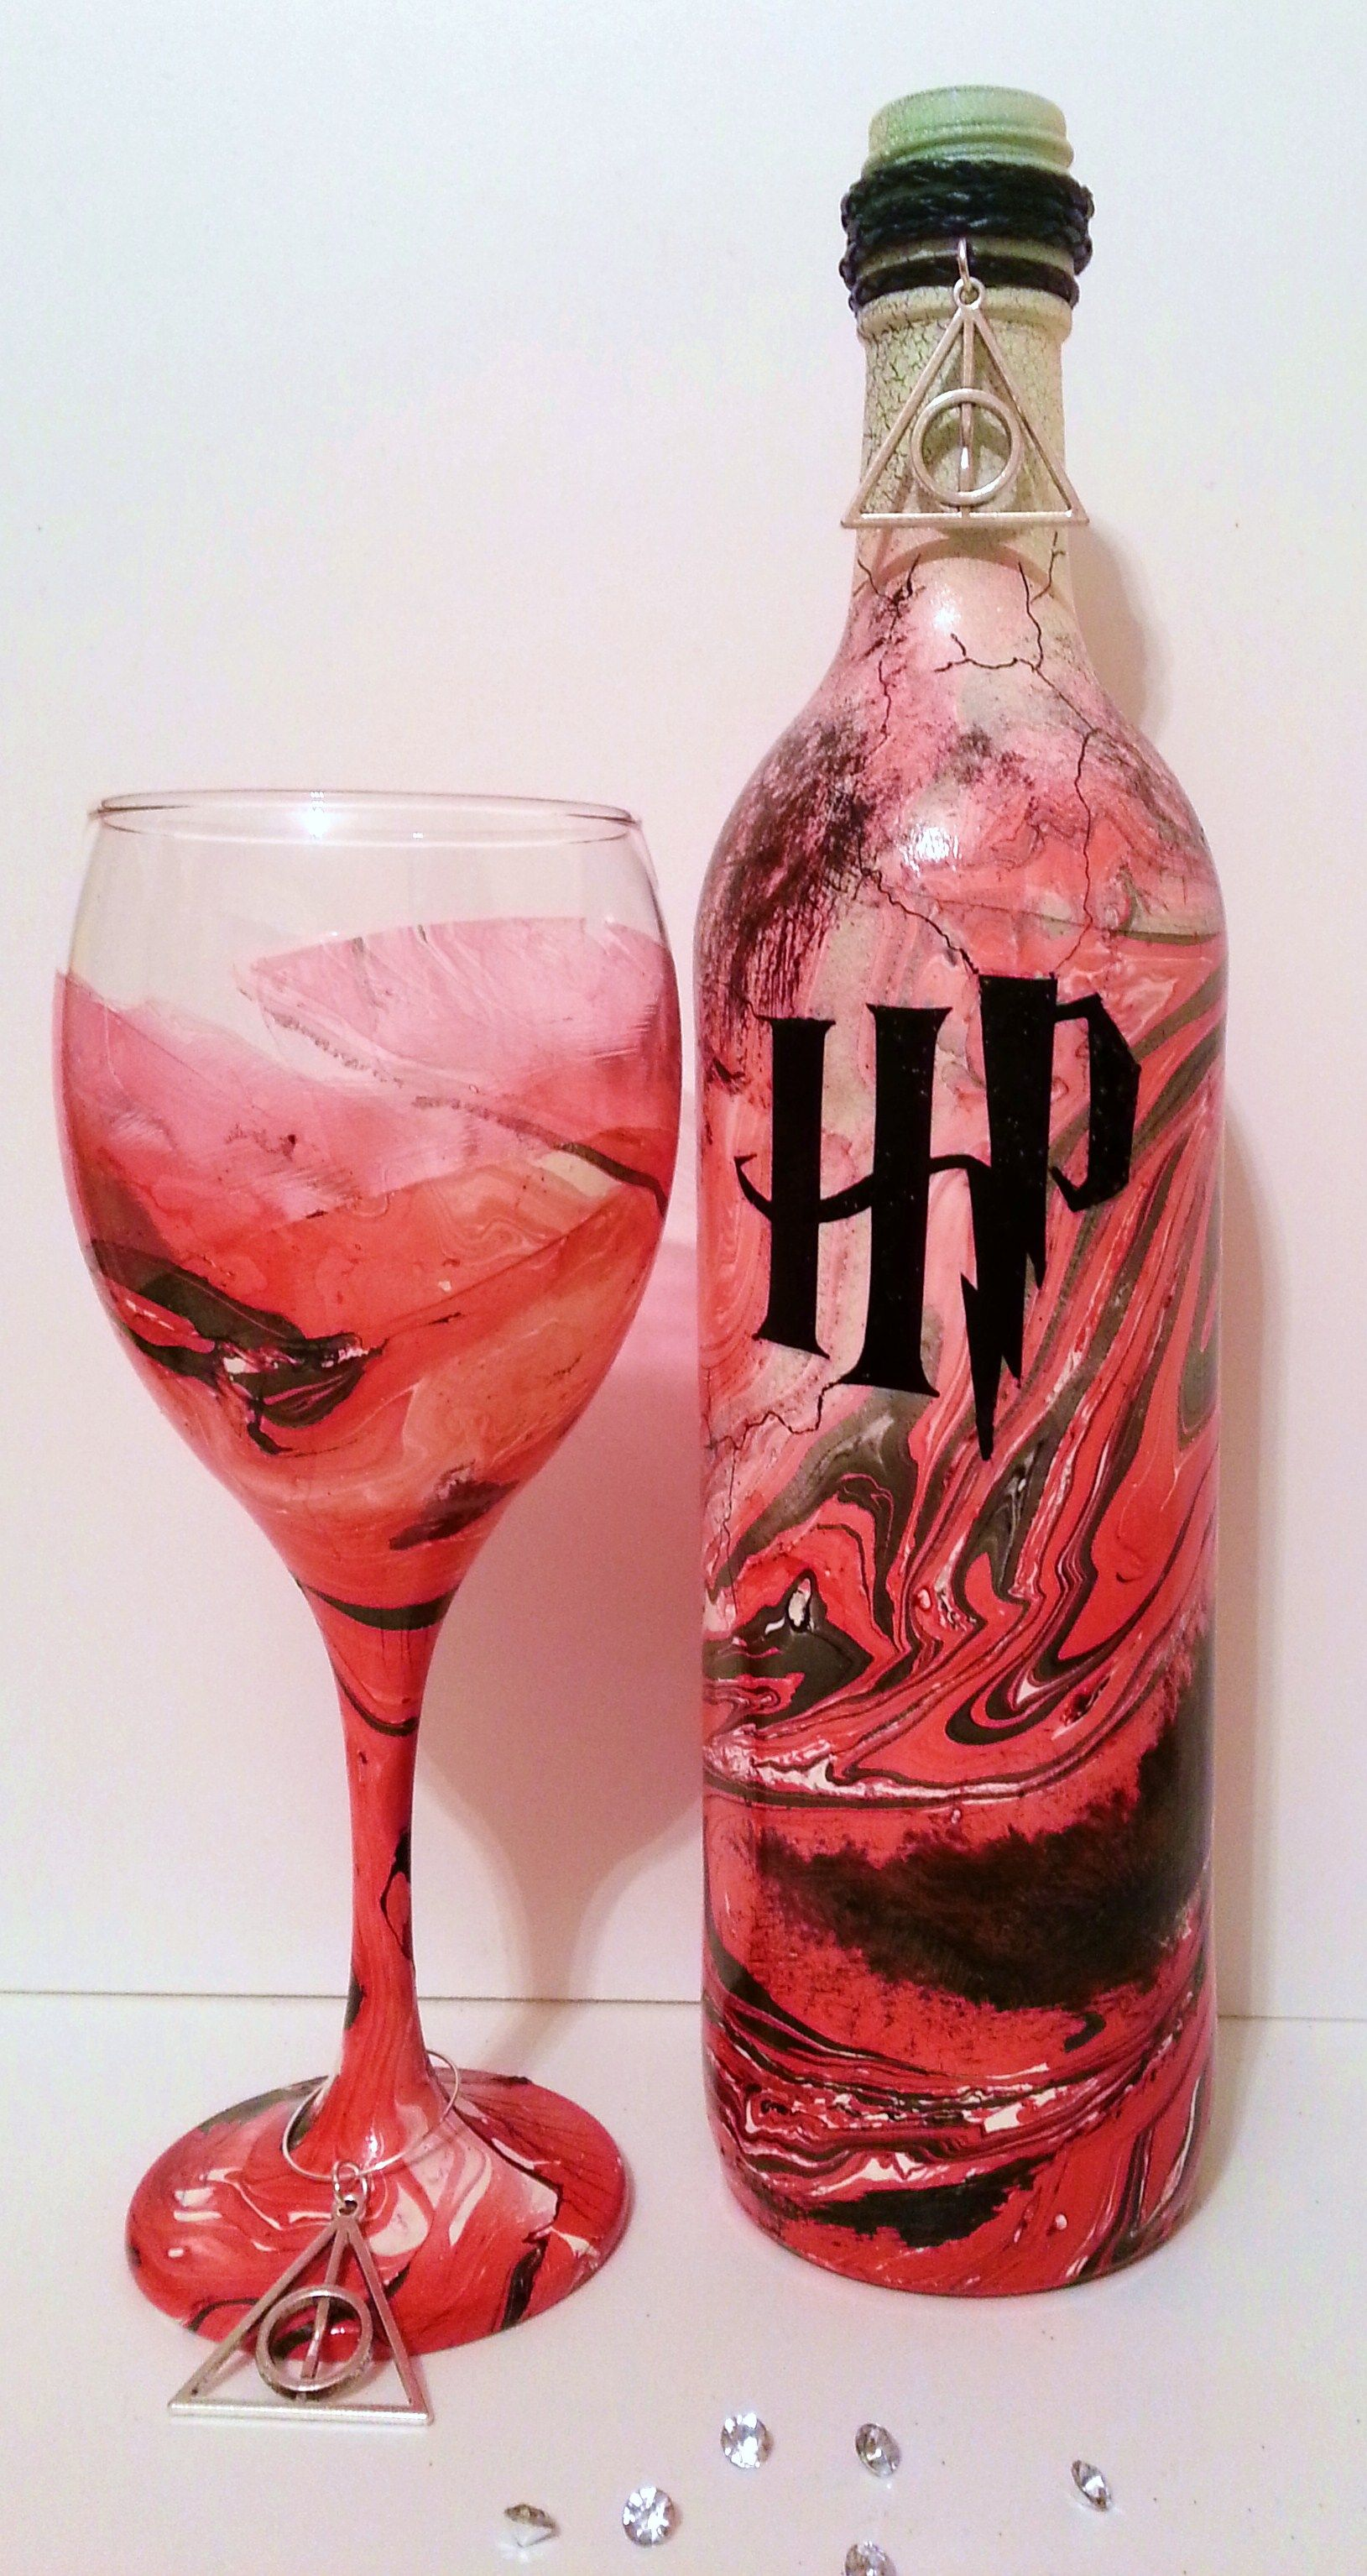 Harry Potter Wine Glass And Wine Bottle Candle Holder 19 99 Painted Wine Bottles Harry Potter Wine Glass Wine Bottle Candles